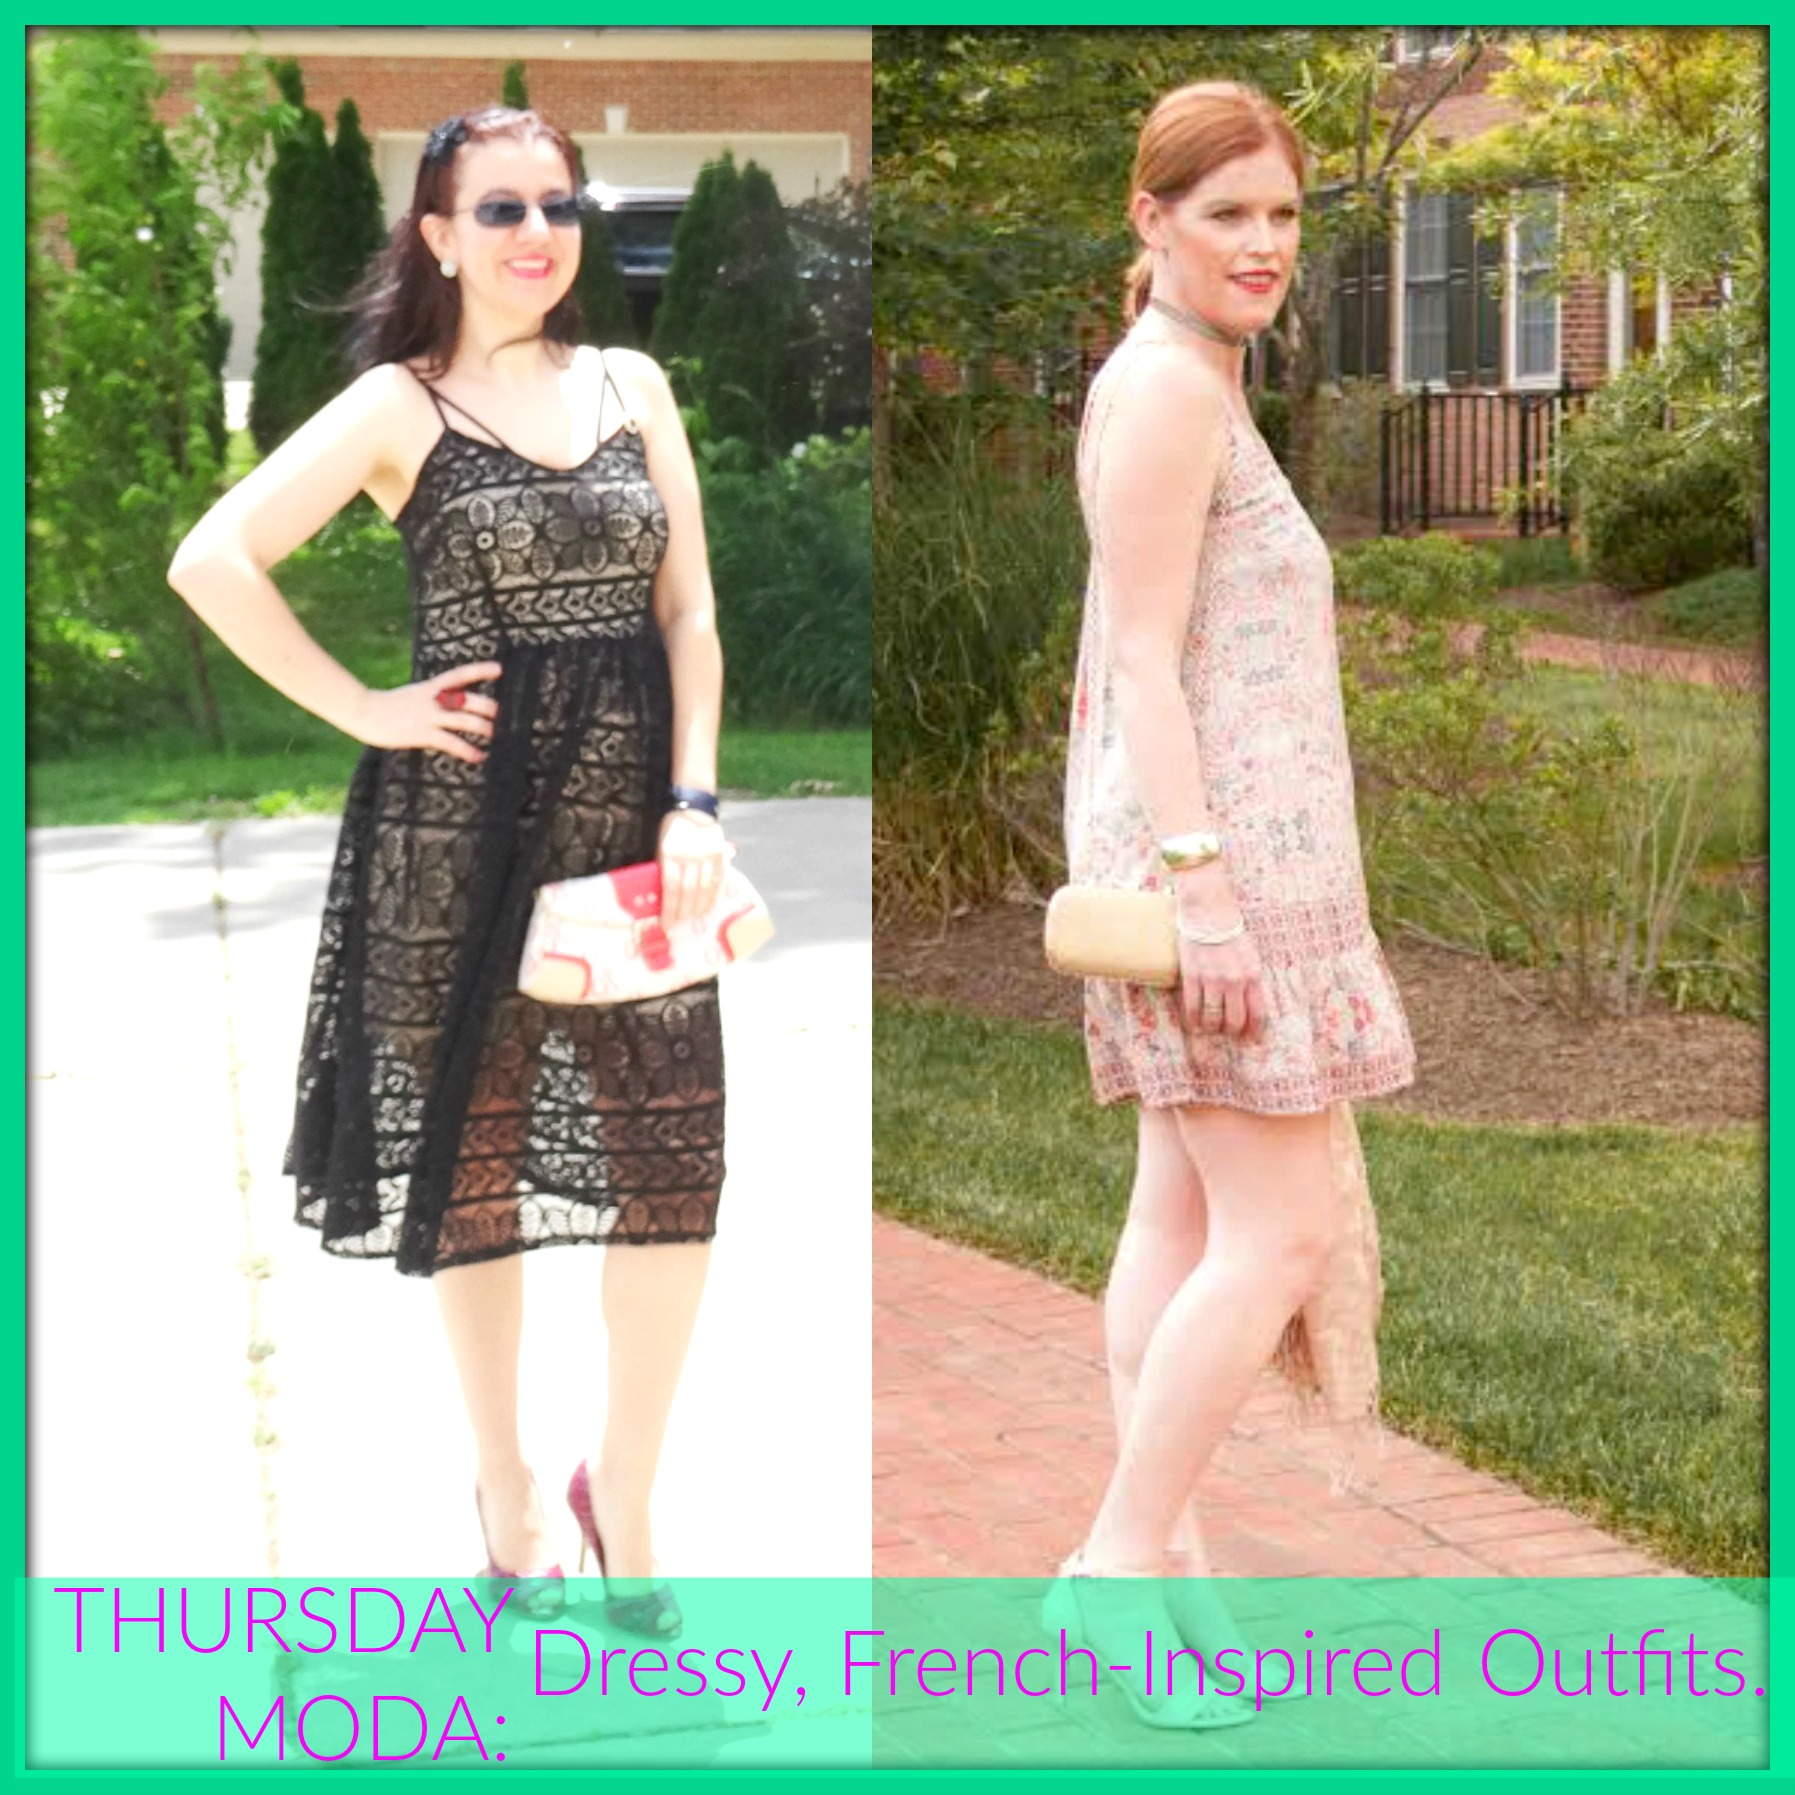 French Chic Outfits and Thursday Moda